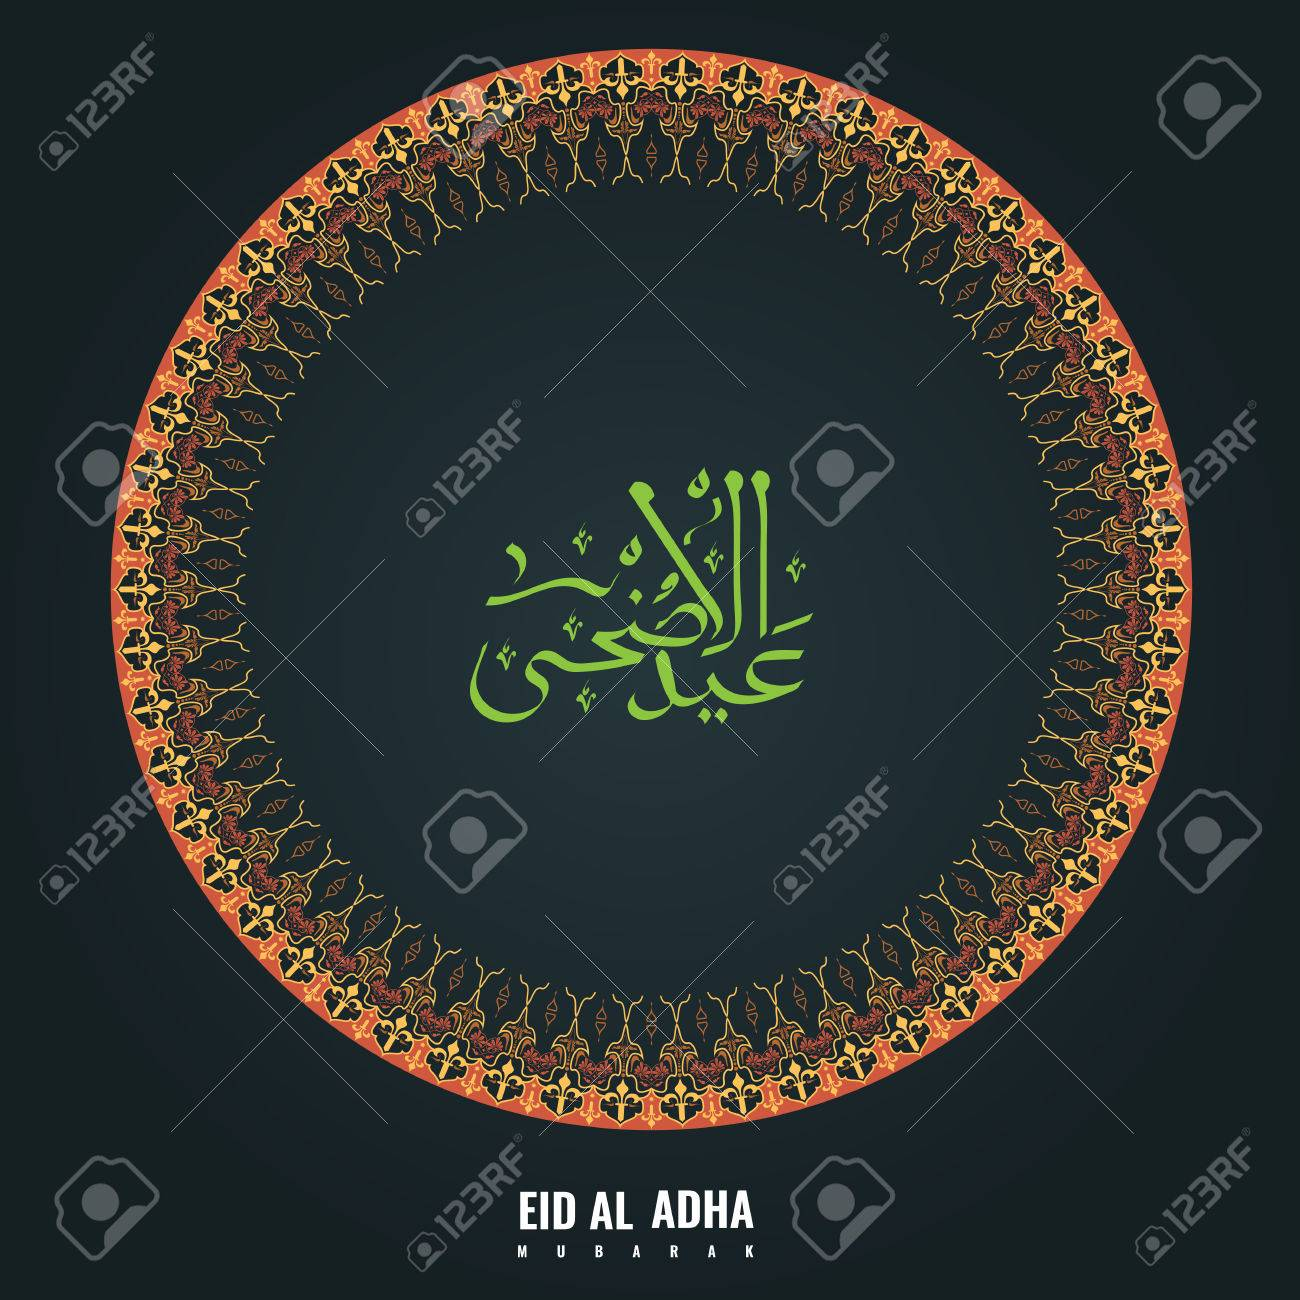 Arabic islamic calligraphy of text eid al adha or kurban bayram arabic islamic calligraphy of text eid al adha or kurban bayram holiday with floral decorated ornate stopboris Gallery